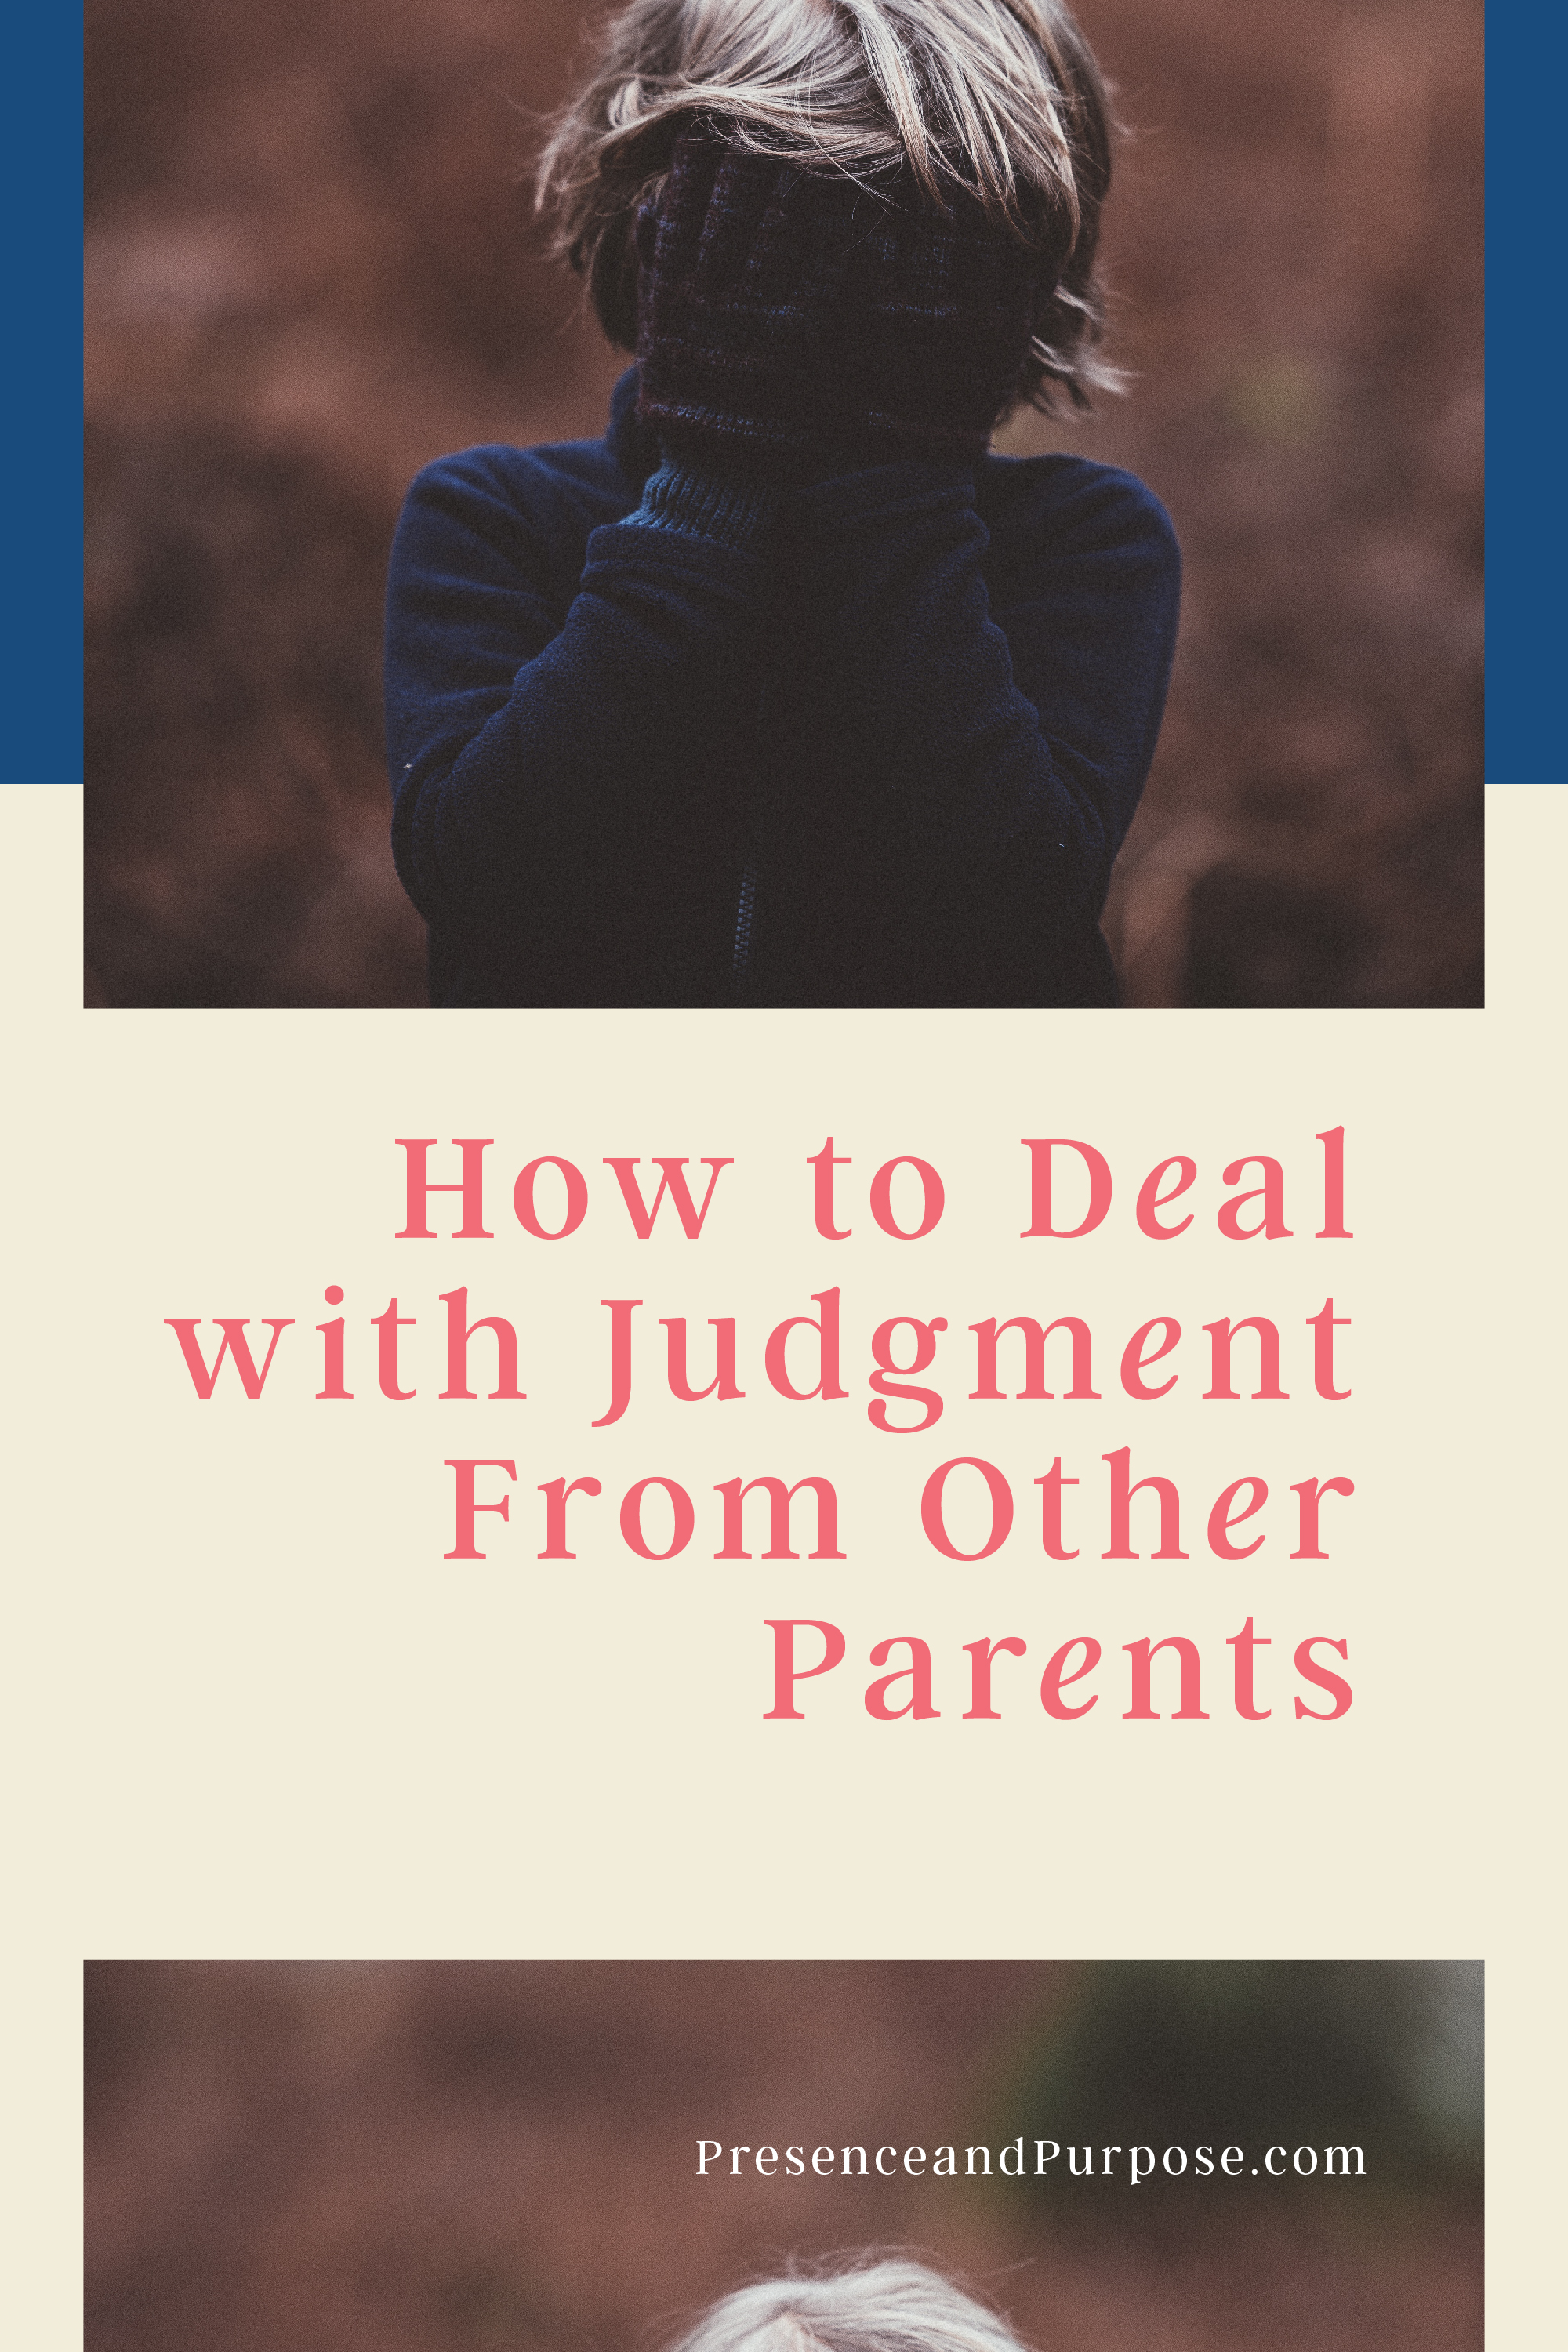 19_0121_How To Deal With Judgements From Other Parents.jpg